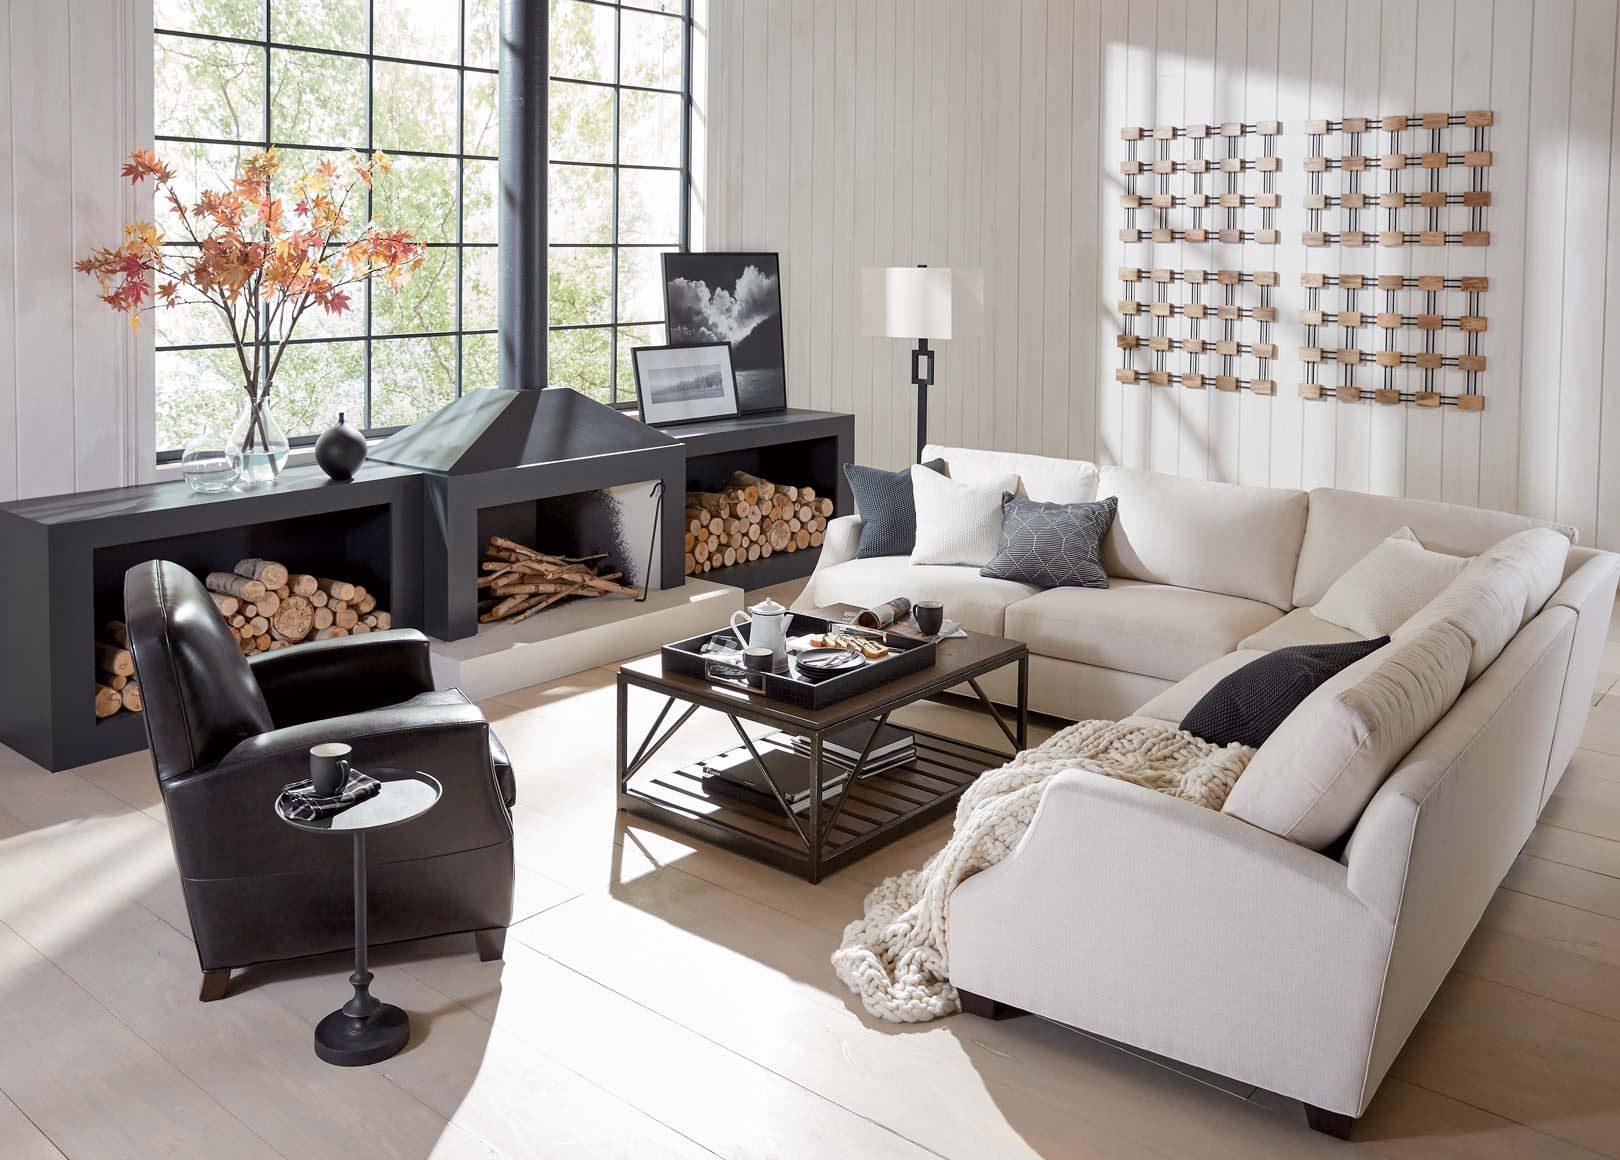 living room couches ethan allen doors cozy modern inspiration in black and white main image